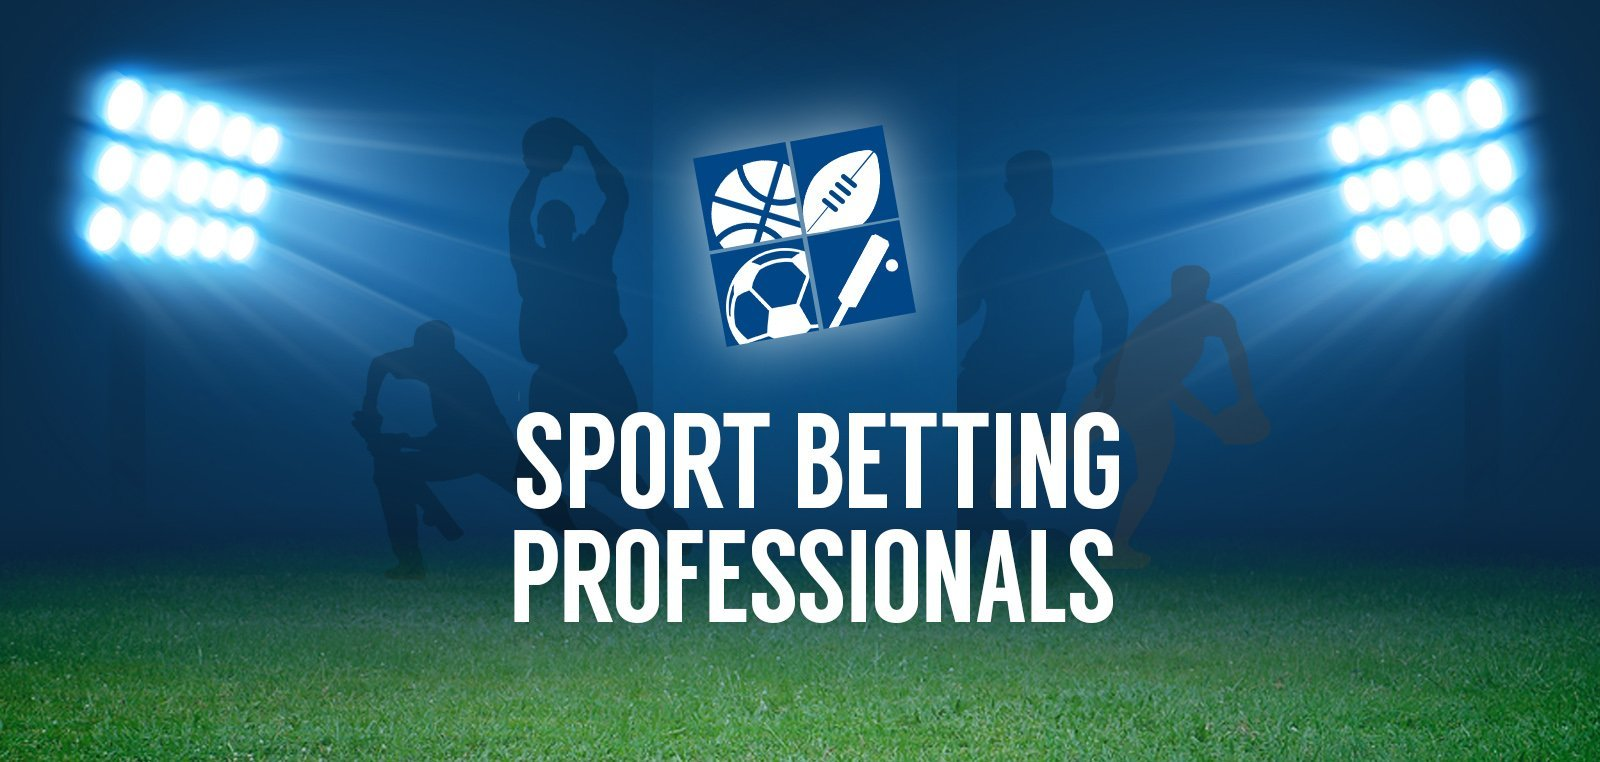 Guide in betting professionally